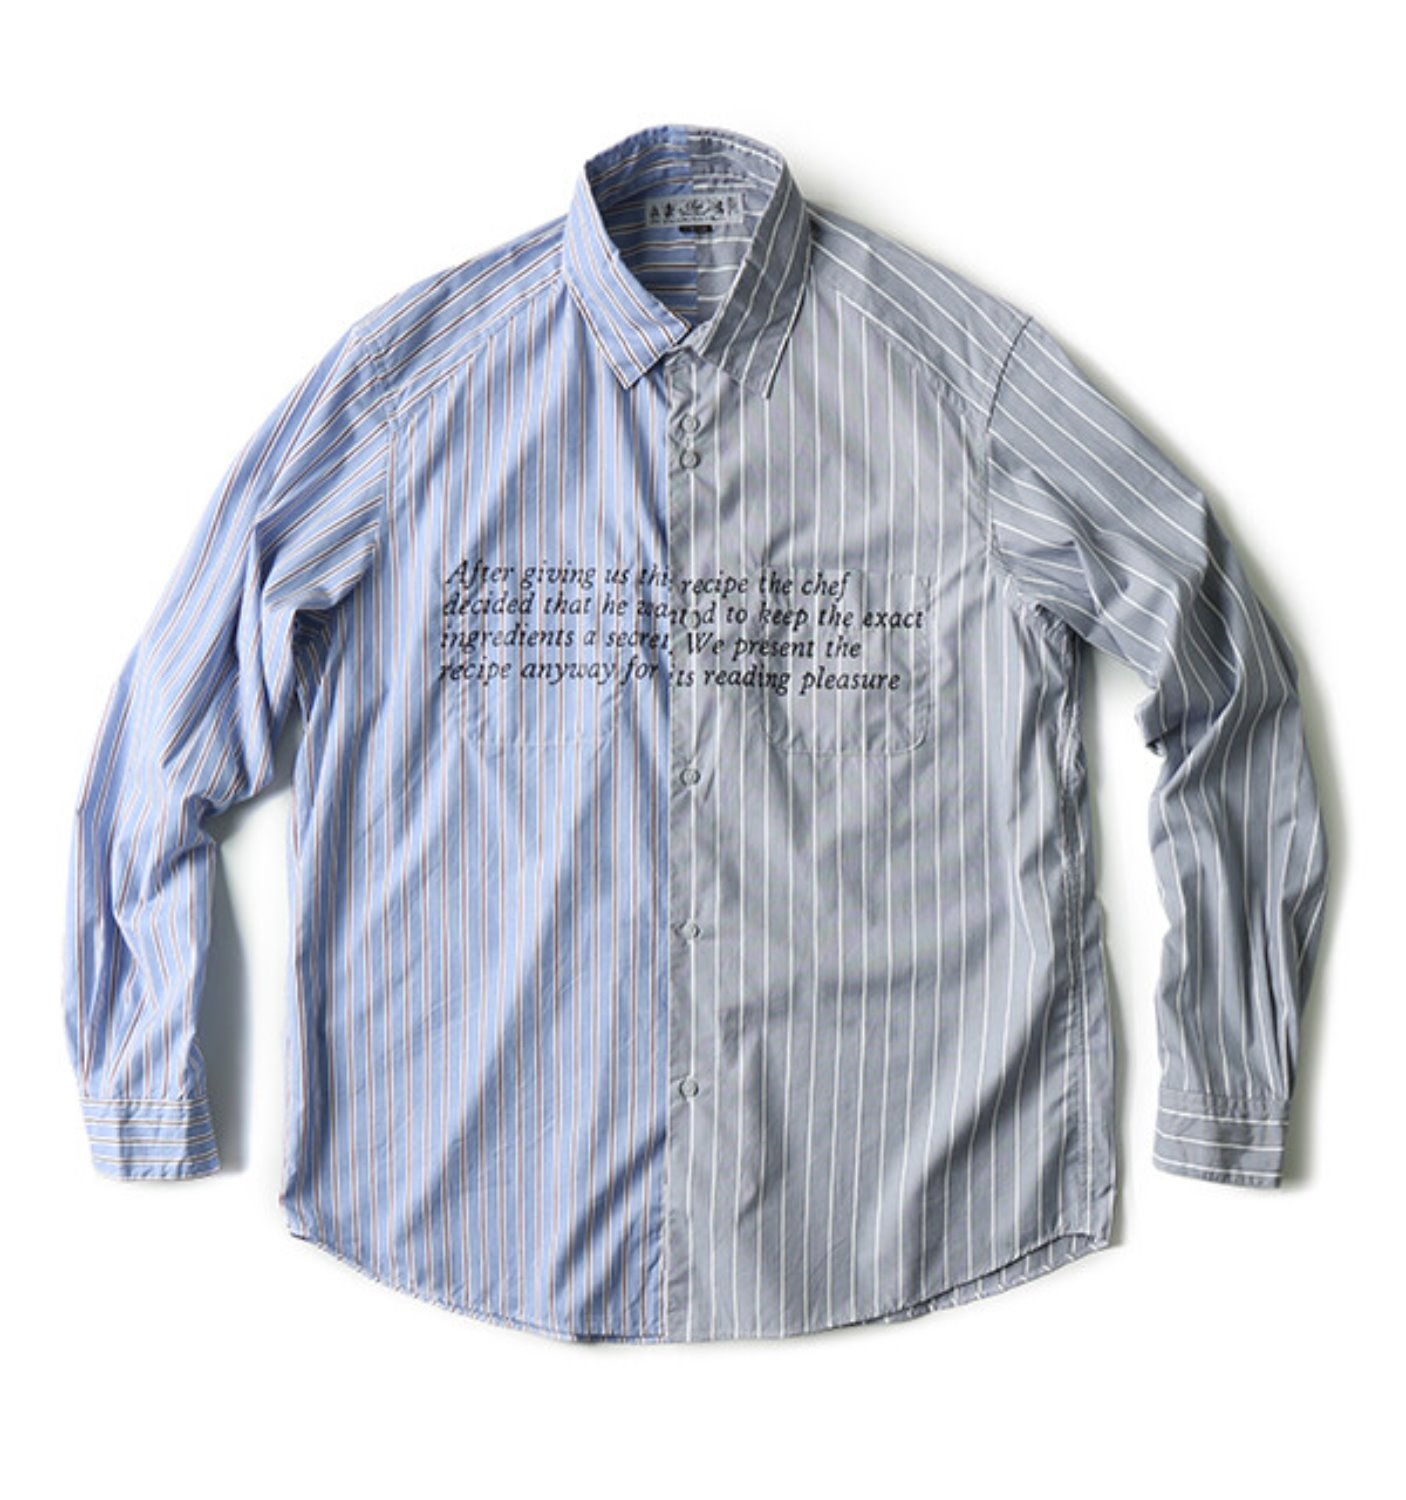 RECIPE & ENIGMA PRINTED DRESS SHIRT BLUE